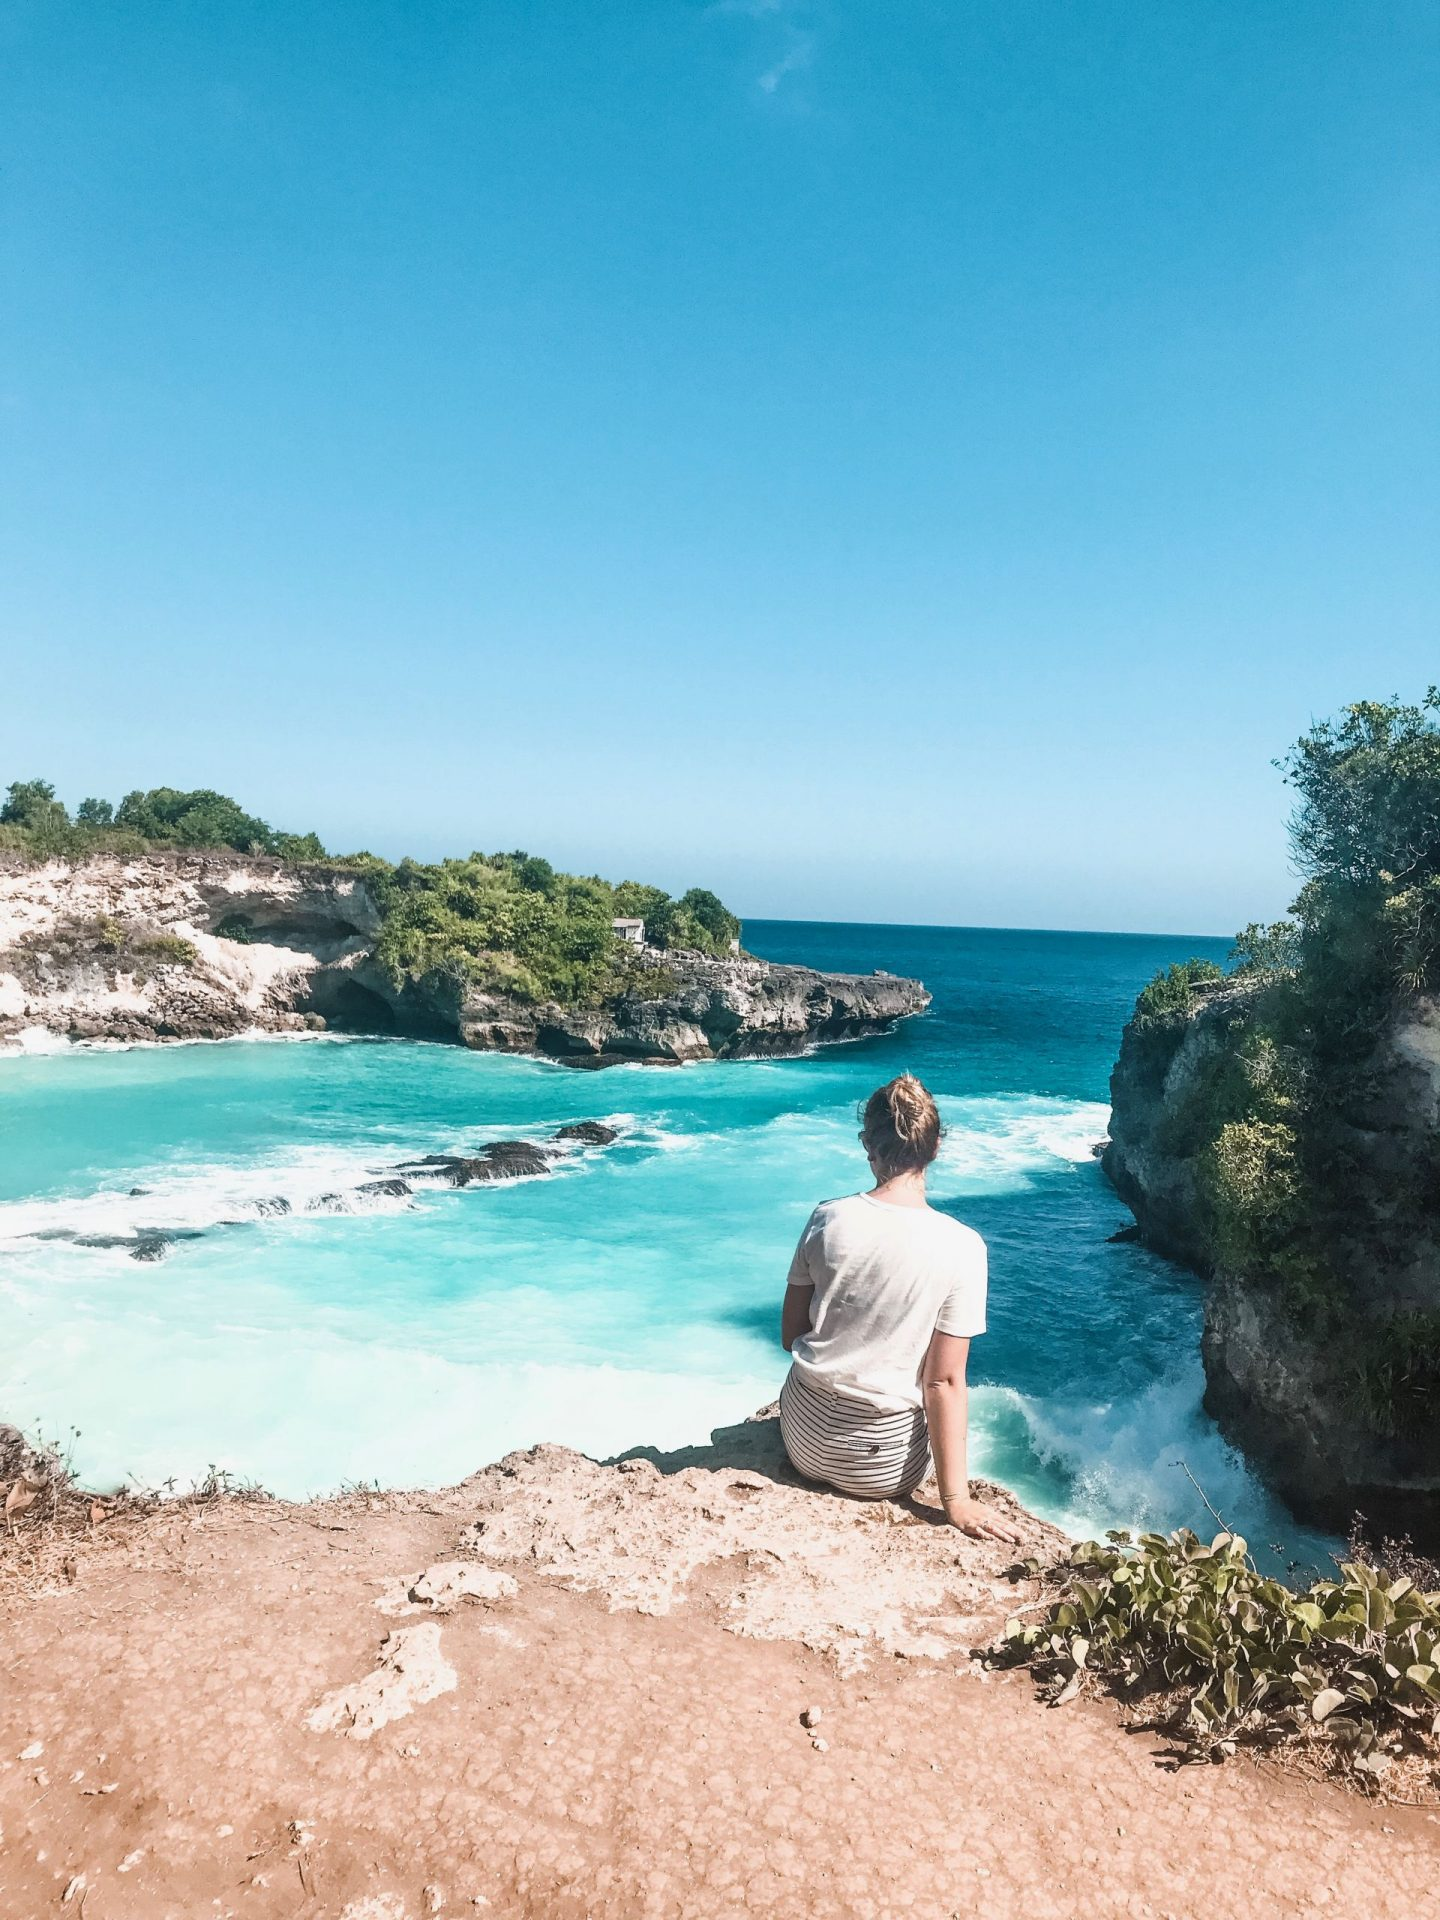 the blue lagoon on nusa ceningan, crystal blue water view from the cliff, the most instagrammable places in bali, where to take pictures in bali, photography in bali